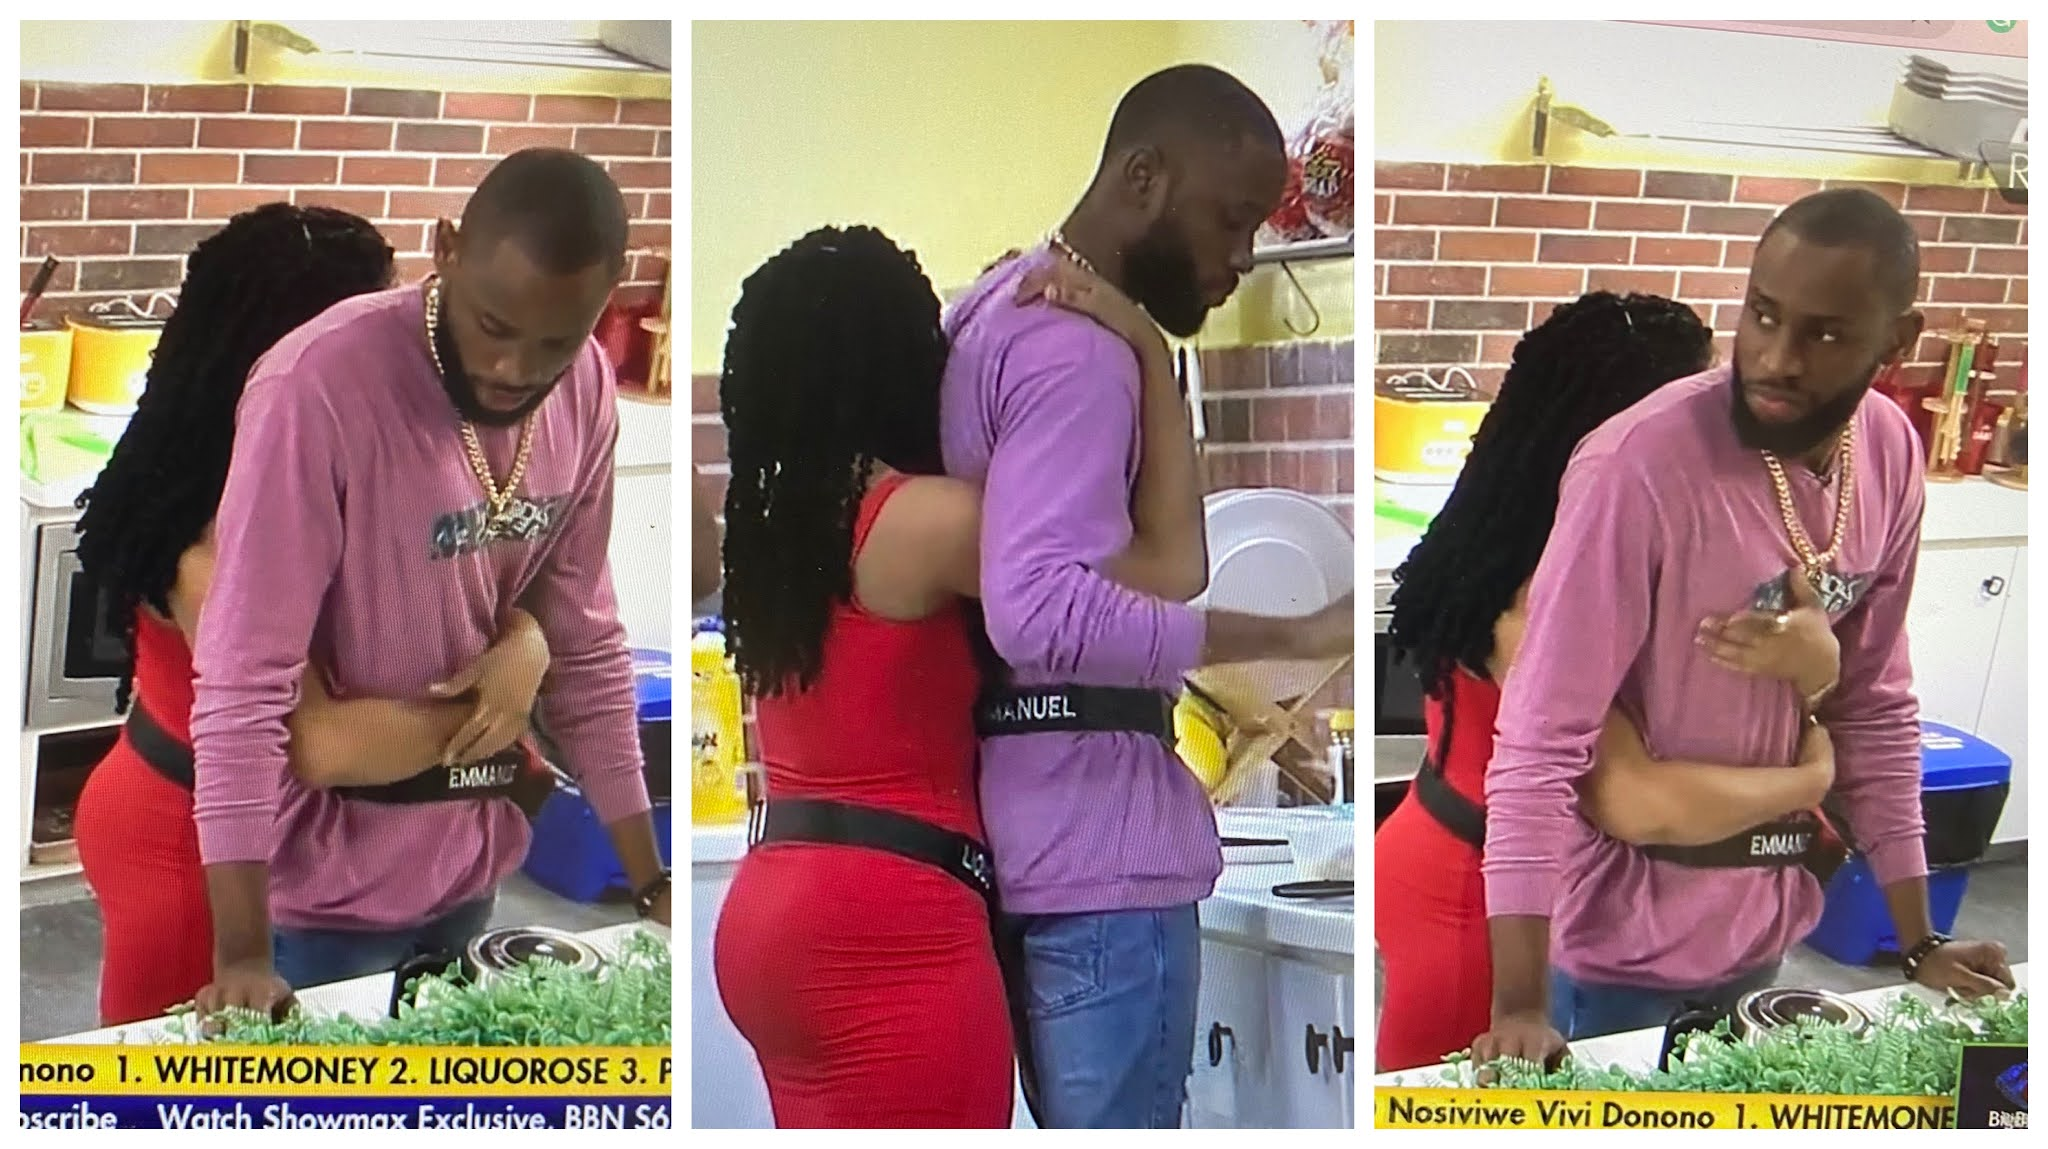 BBNaija: These Liquorose and Emmanuel's romantic pictures are all you need to see today